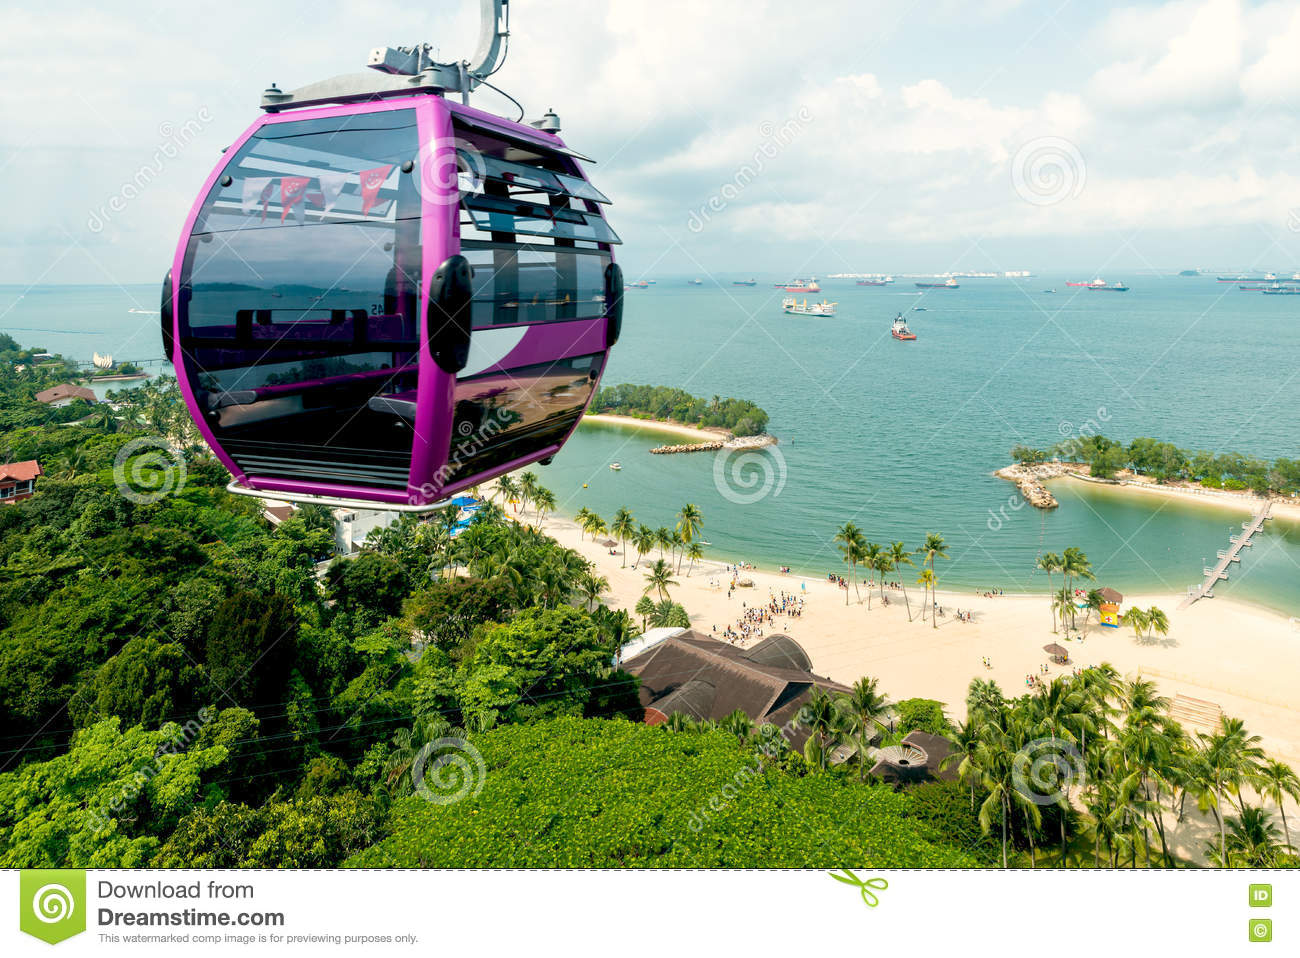 Singapore cable car in Sentosa island with aerial view.